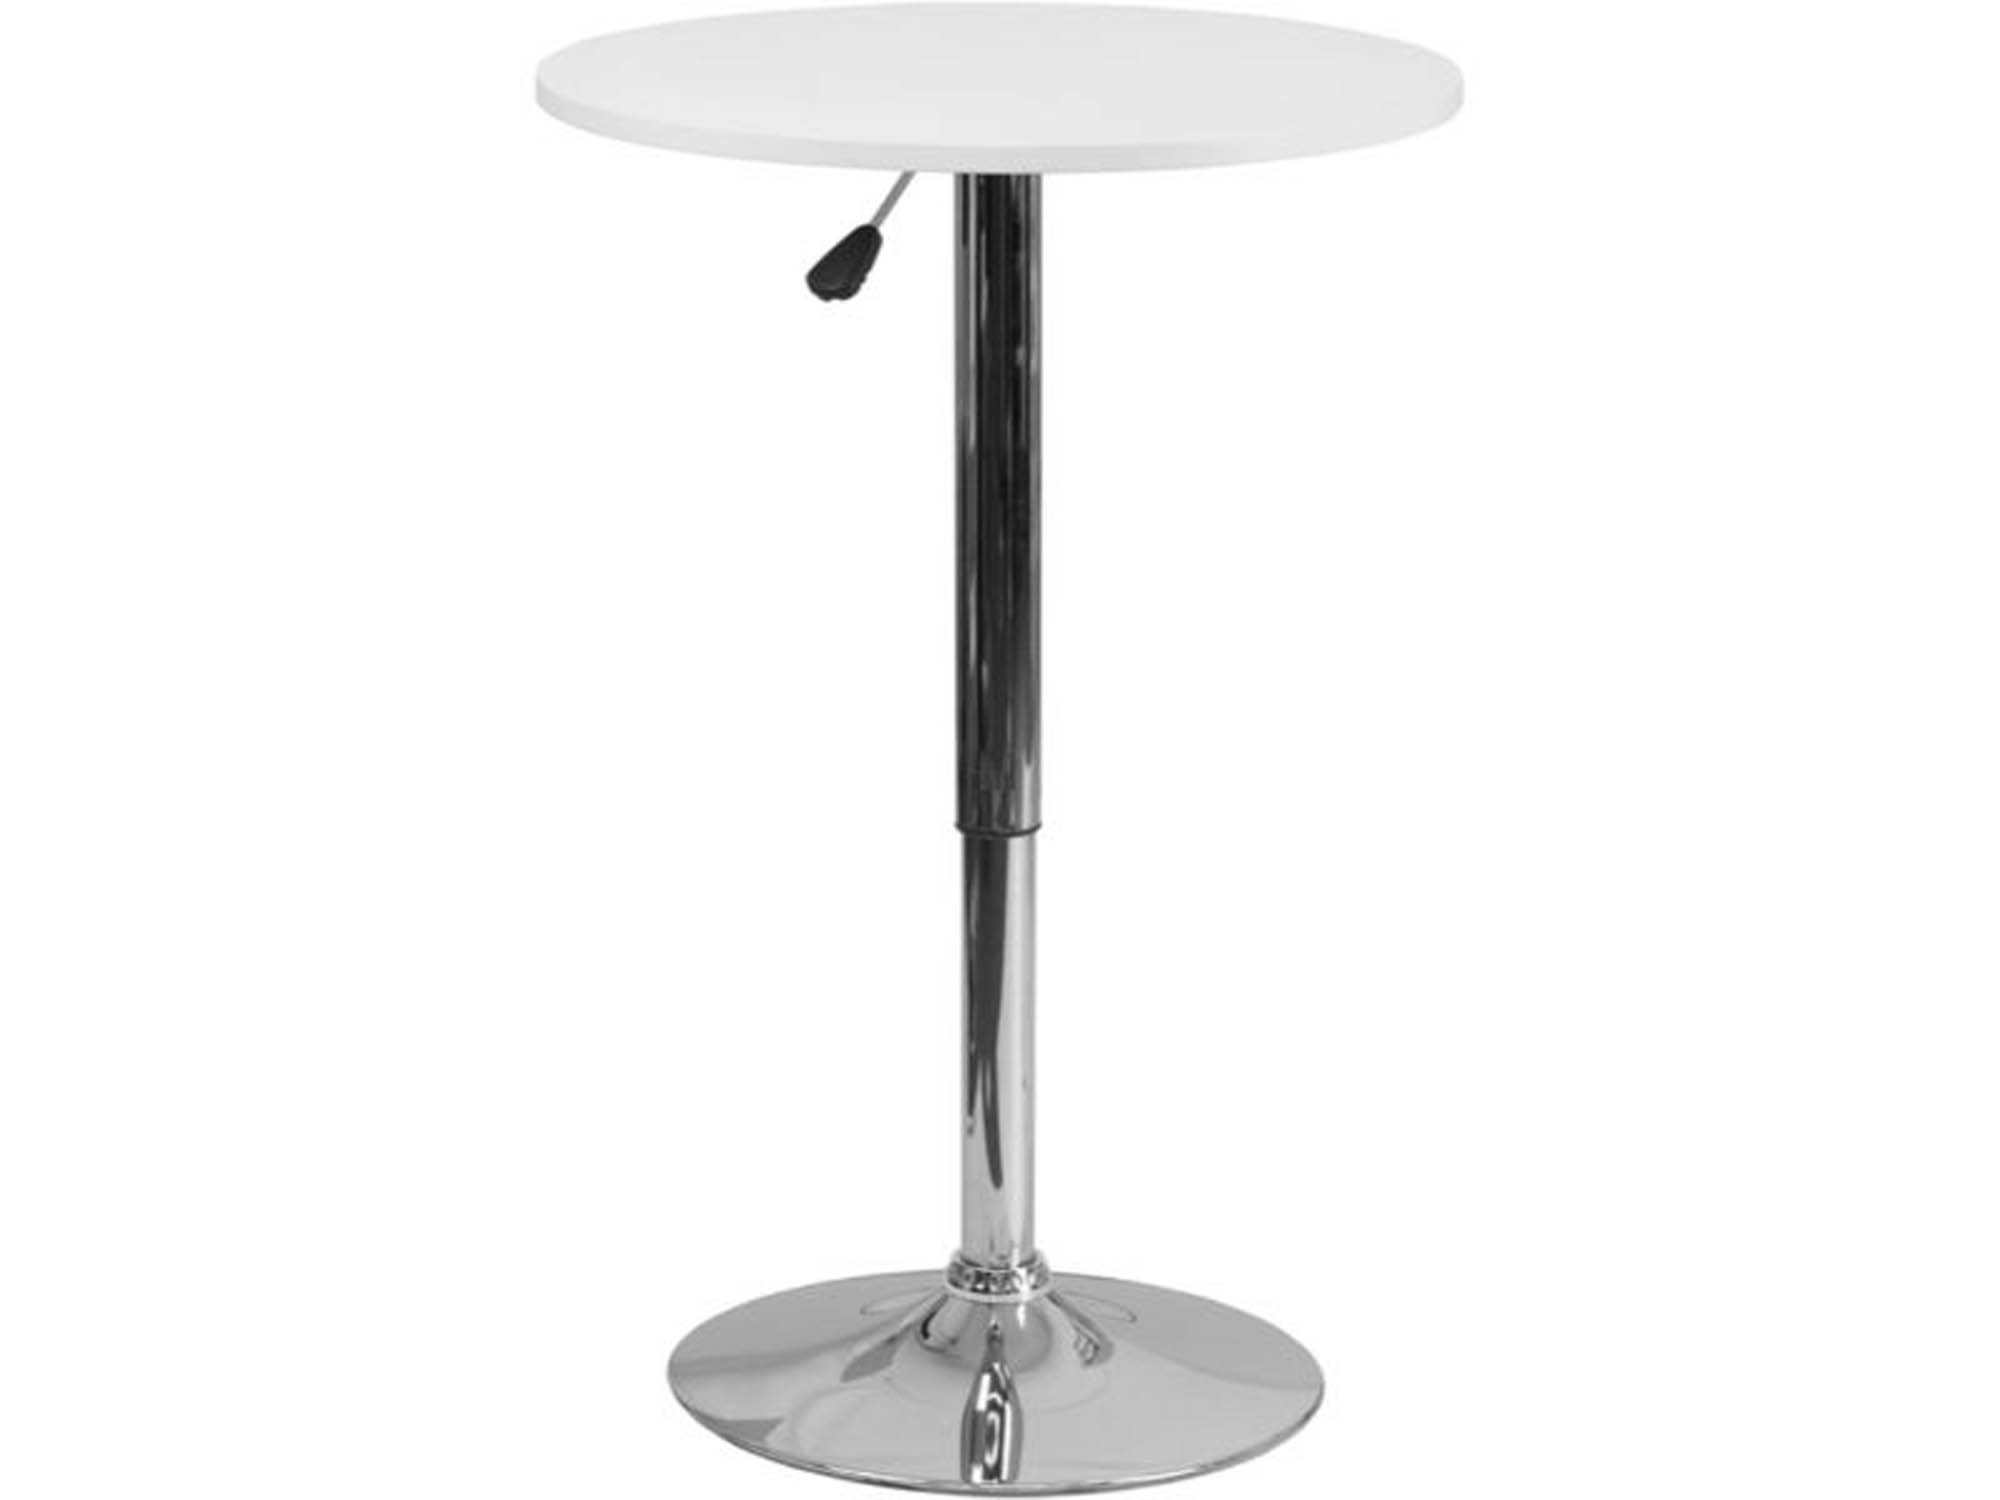 Offex 23.75' Adjustable Height White Wood Pedestal Table